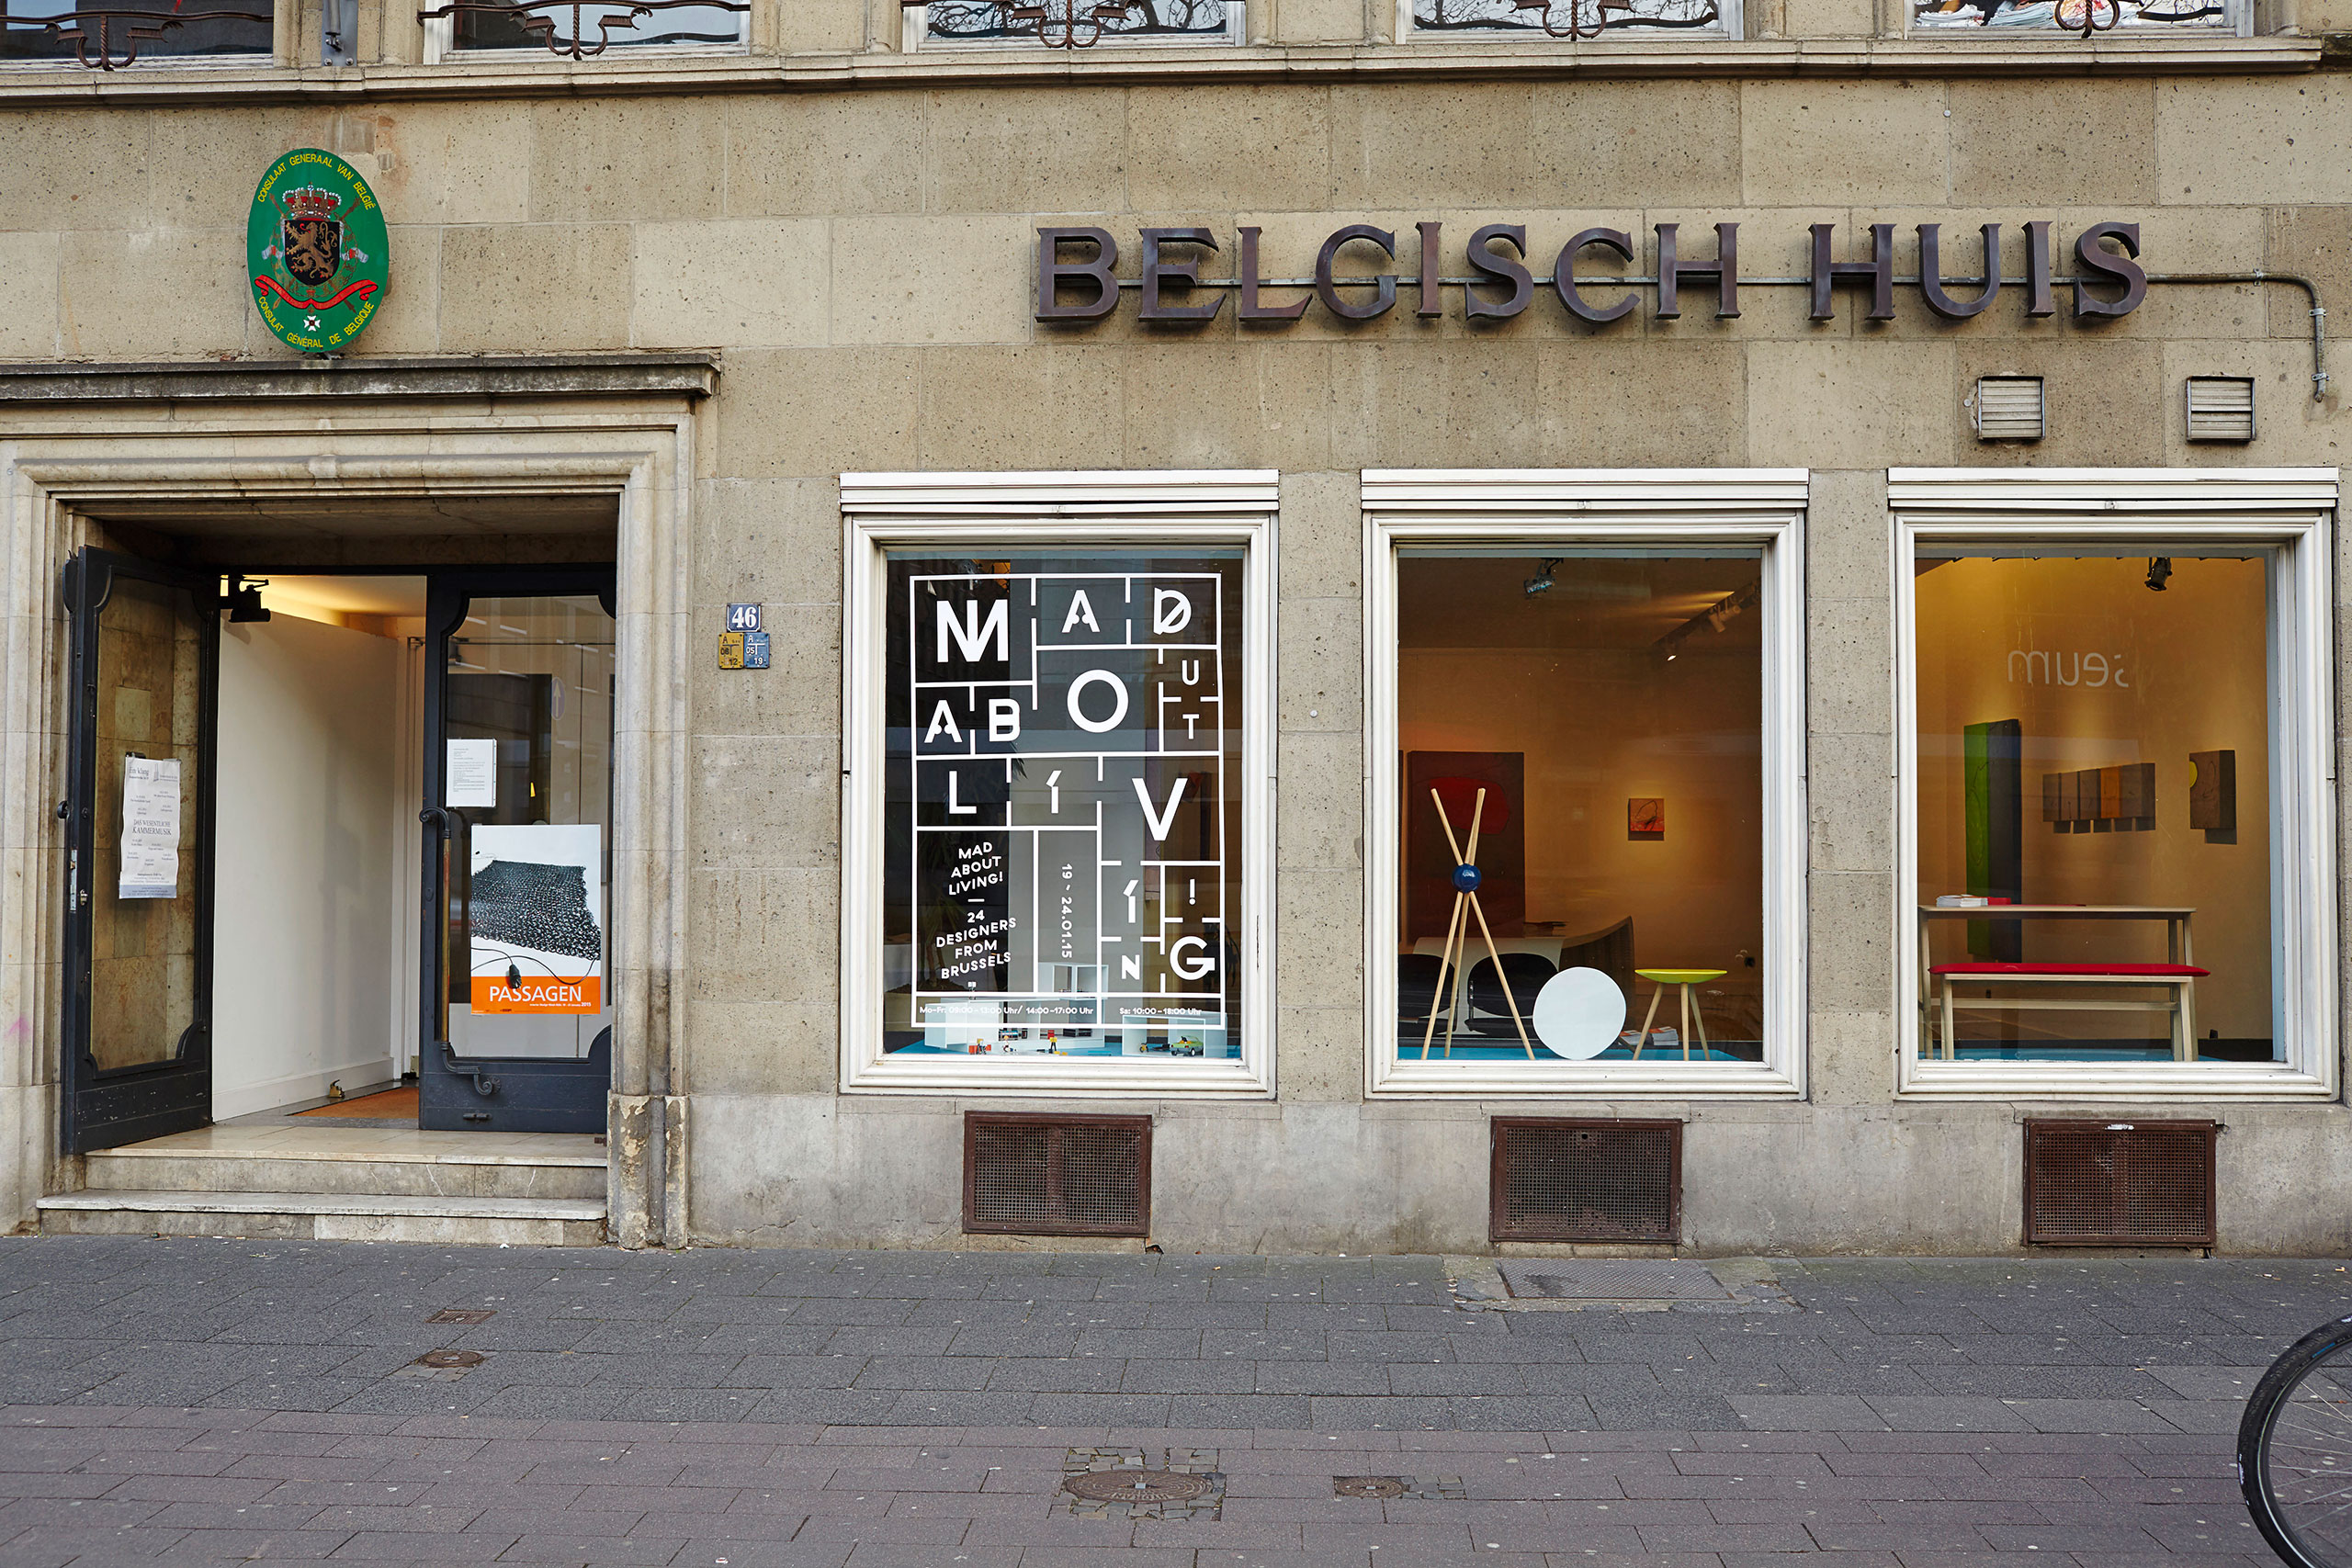 Exterior of the Belgisch Huis in Cologne. Photo © Valery Kloubert.